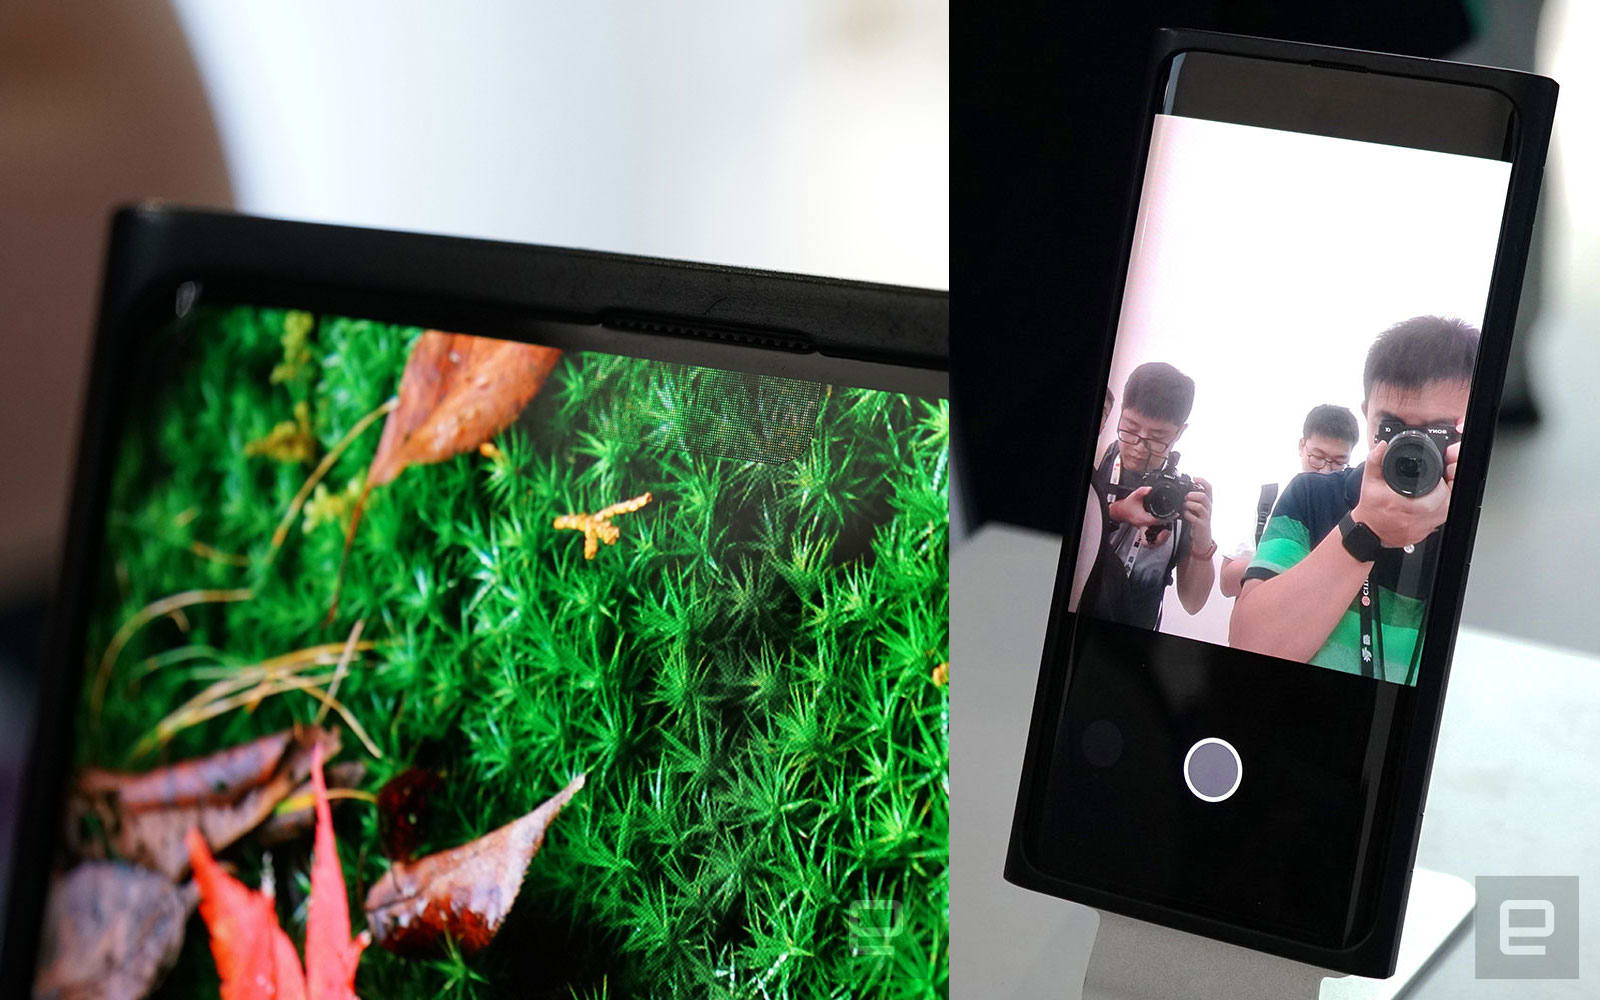 Oppo's under-screen camera is real and taking photos in Shanghai